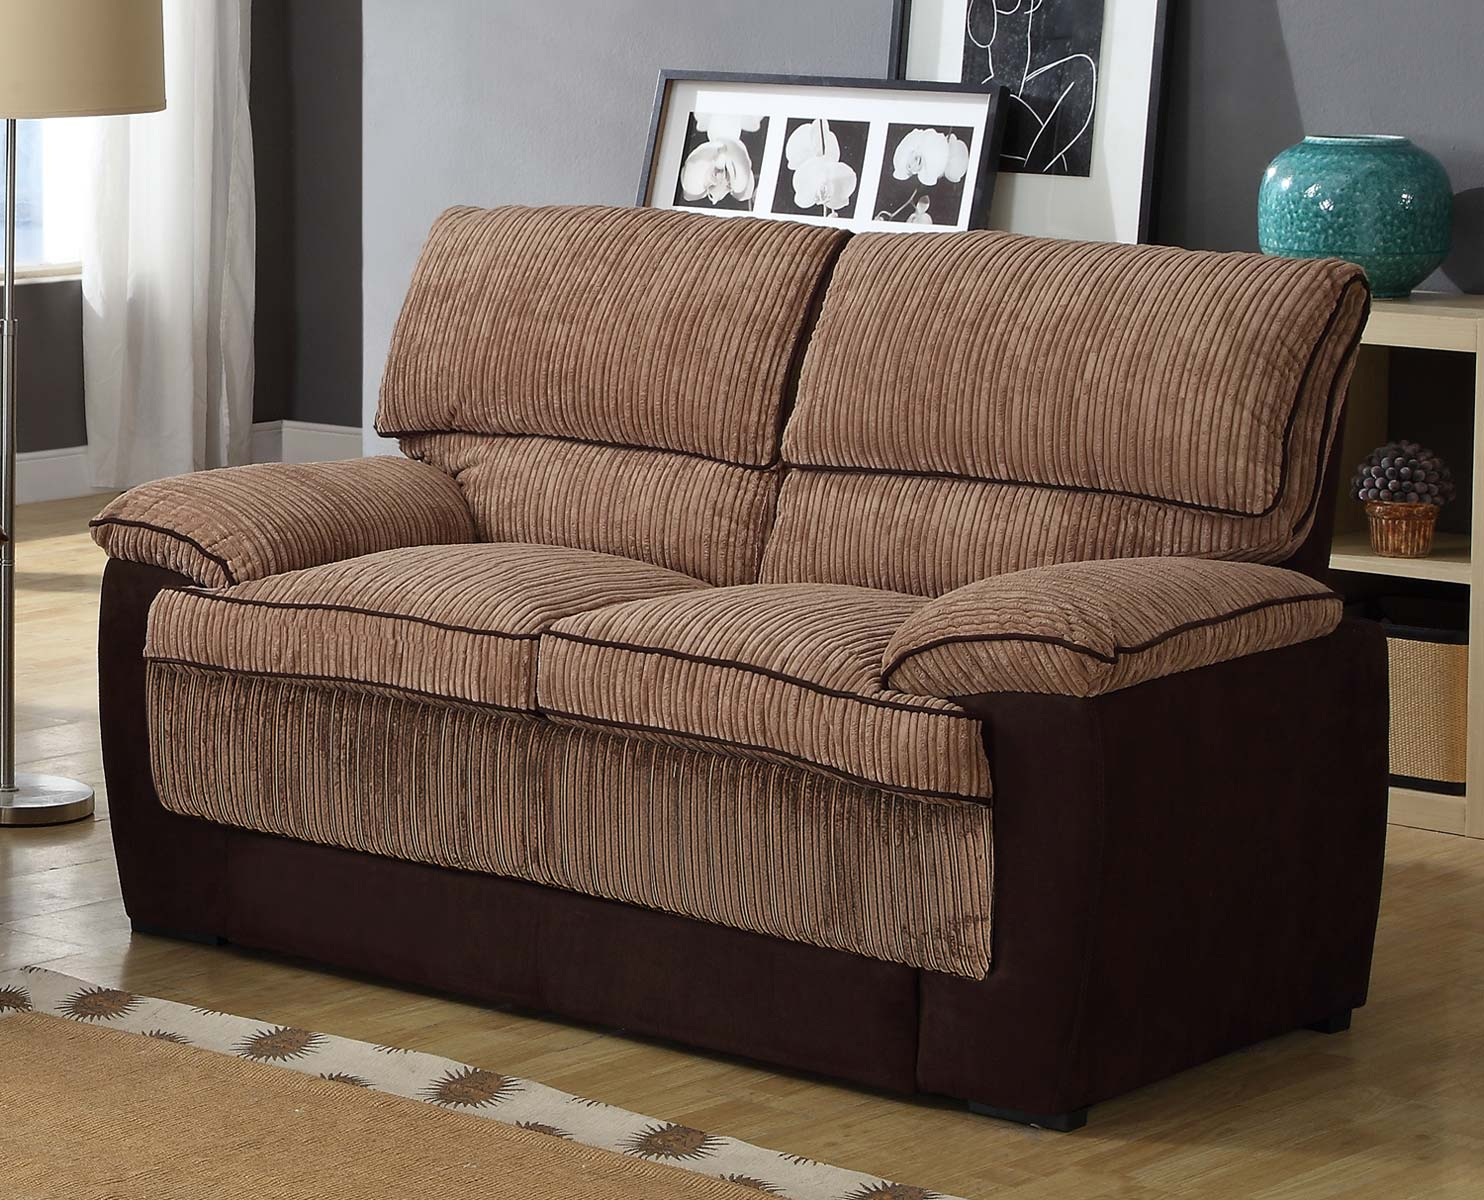 Homelegance McCollum Love Seat - Brown - Corduroy and Microfiber